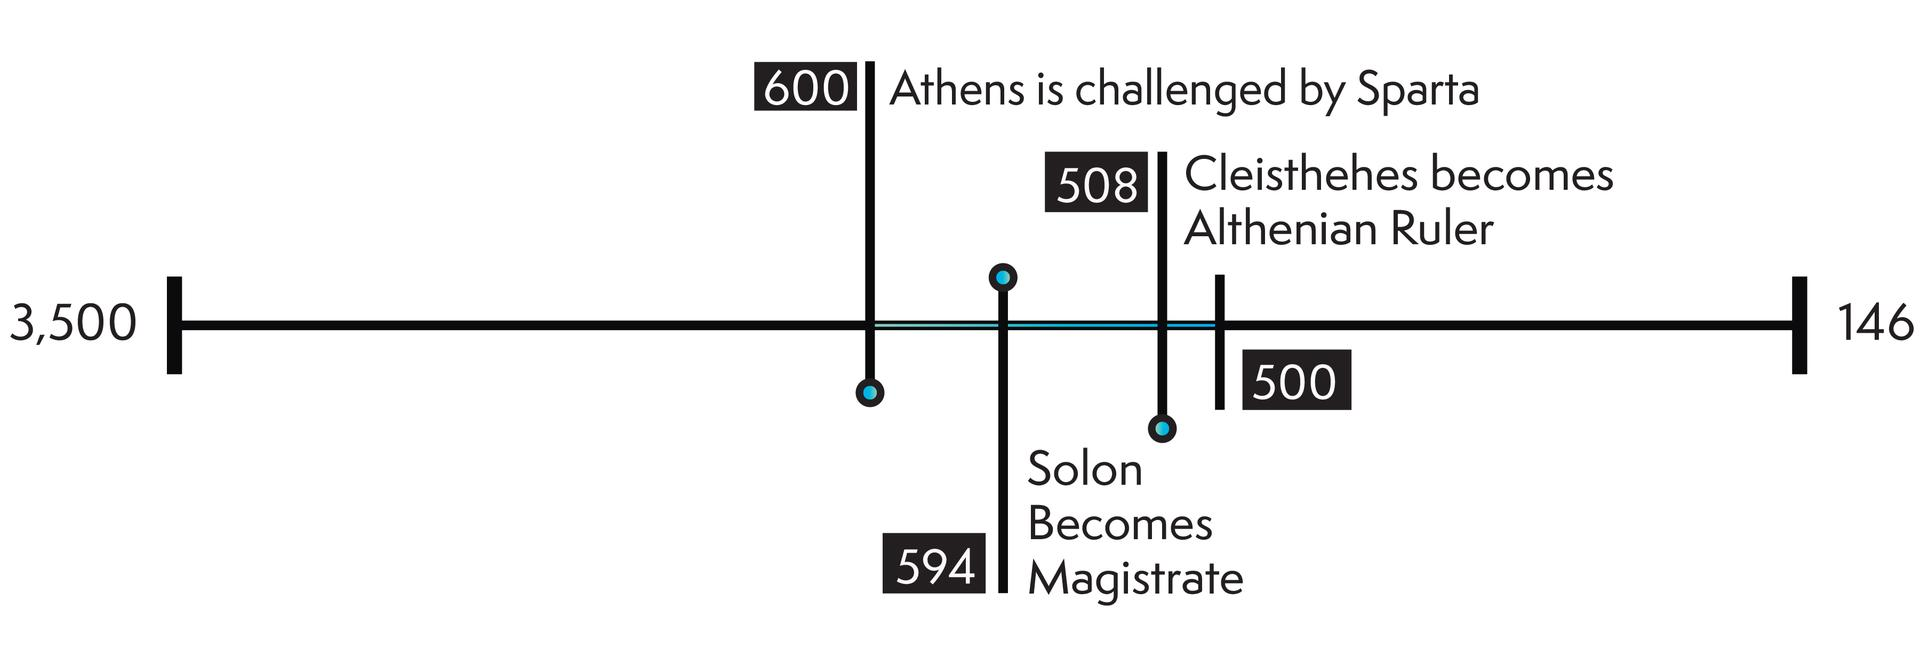 time line of Athen's creation of early democracy.